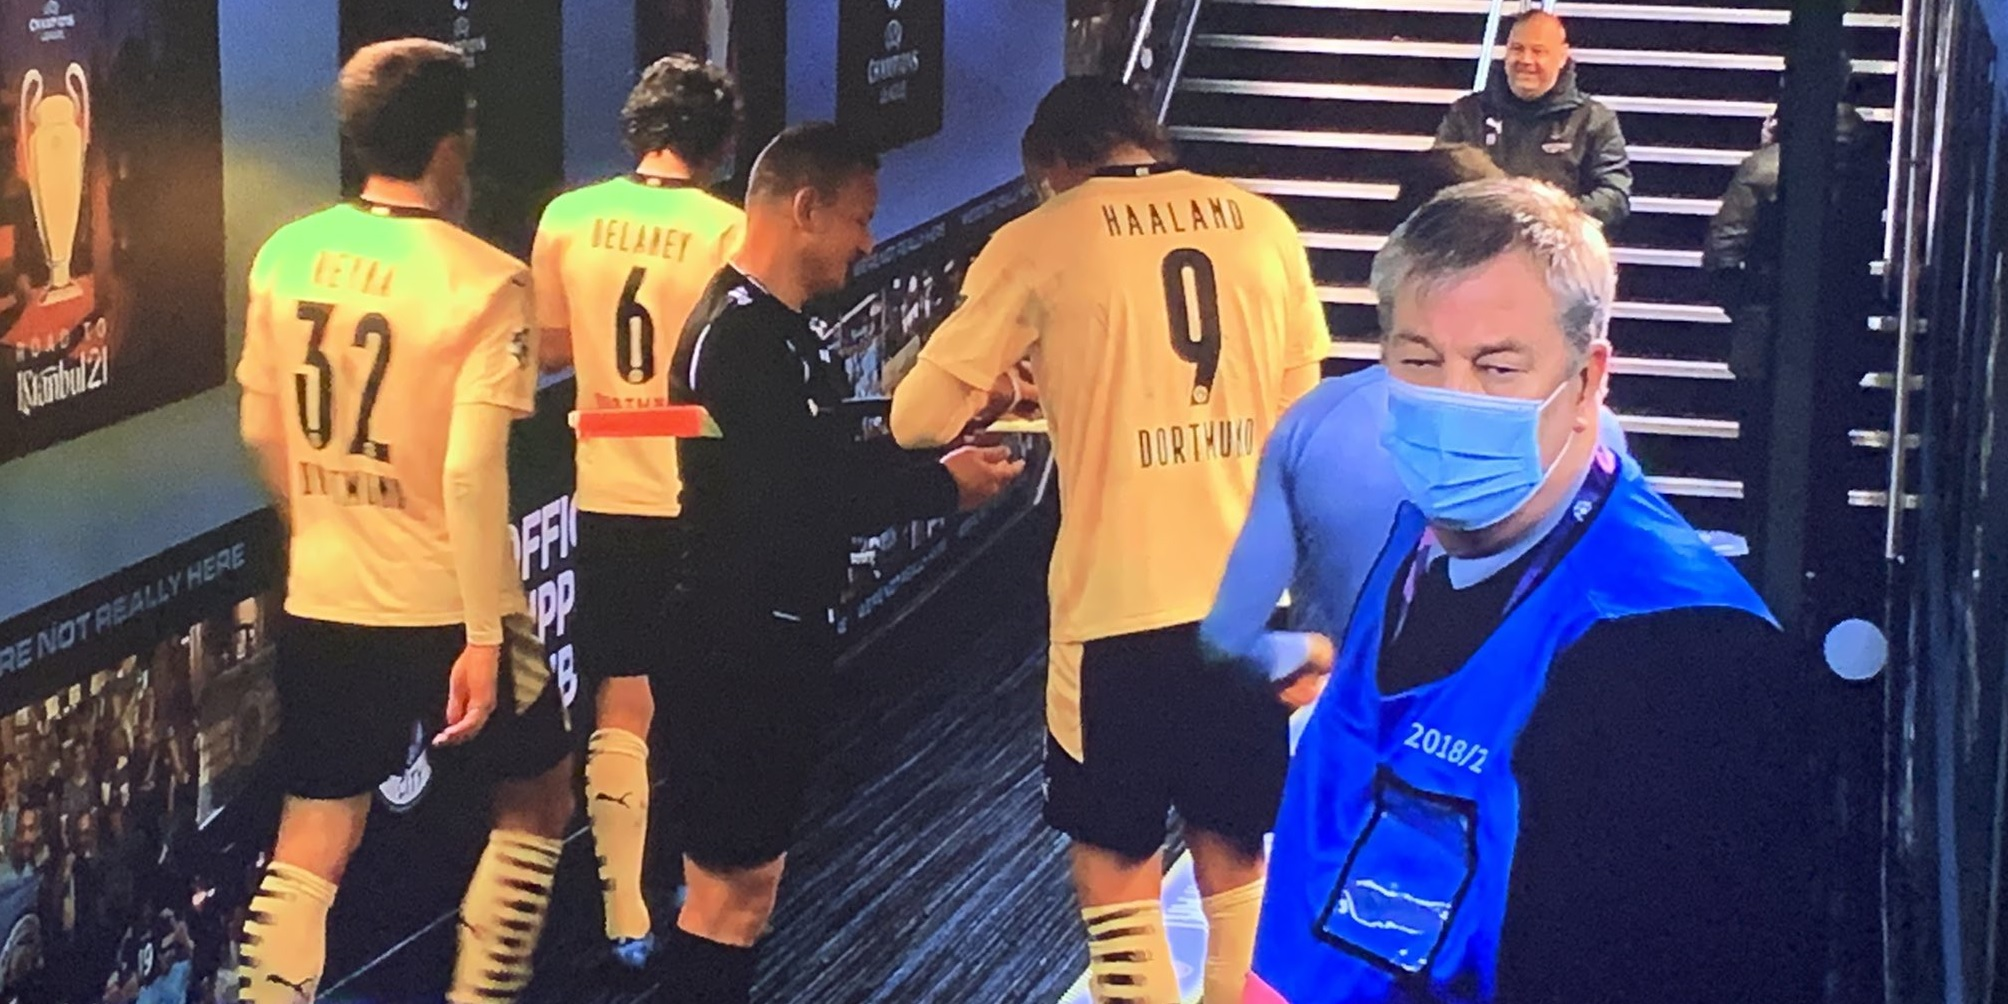 'Games gone' 'Why are people mad' – Fans react to lino asking Haaland for autograph after Dortmund-City UCL clash